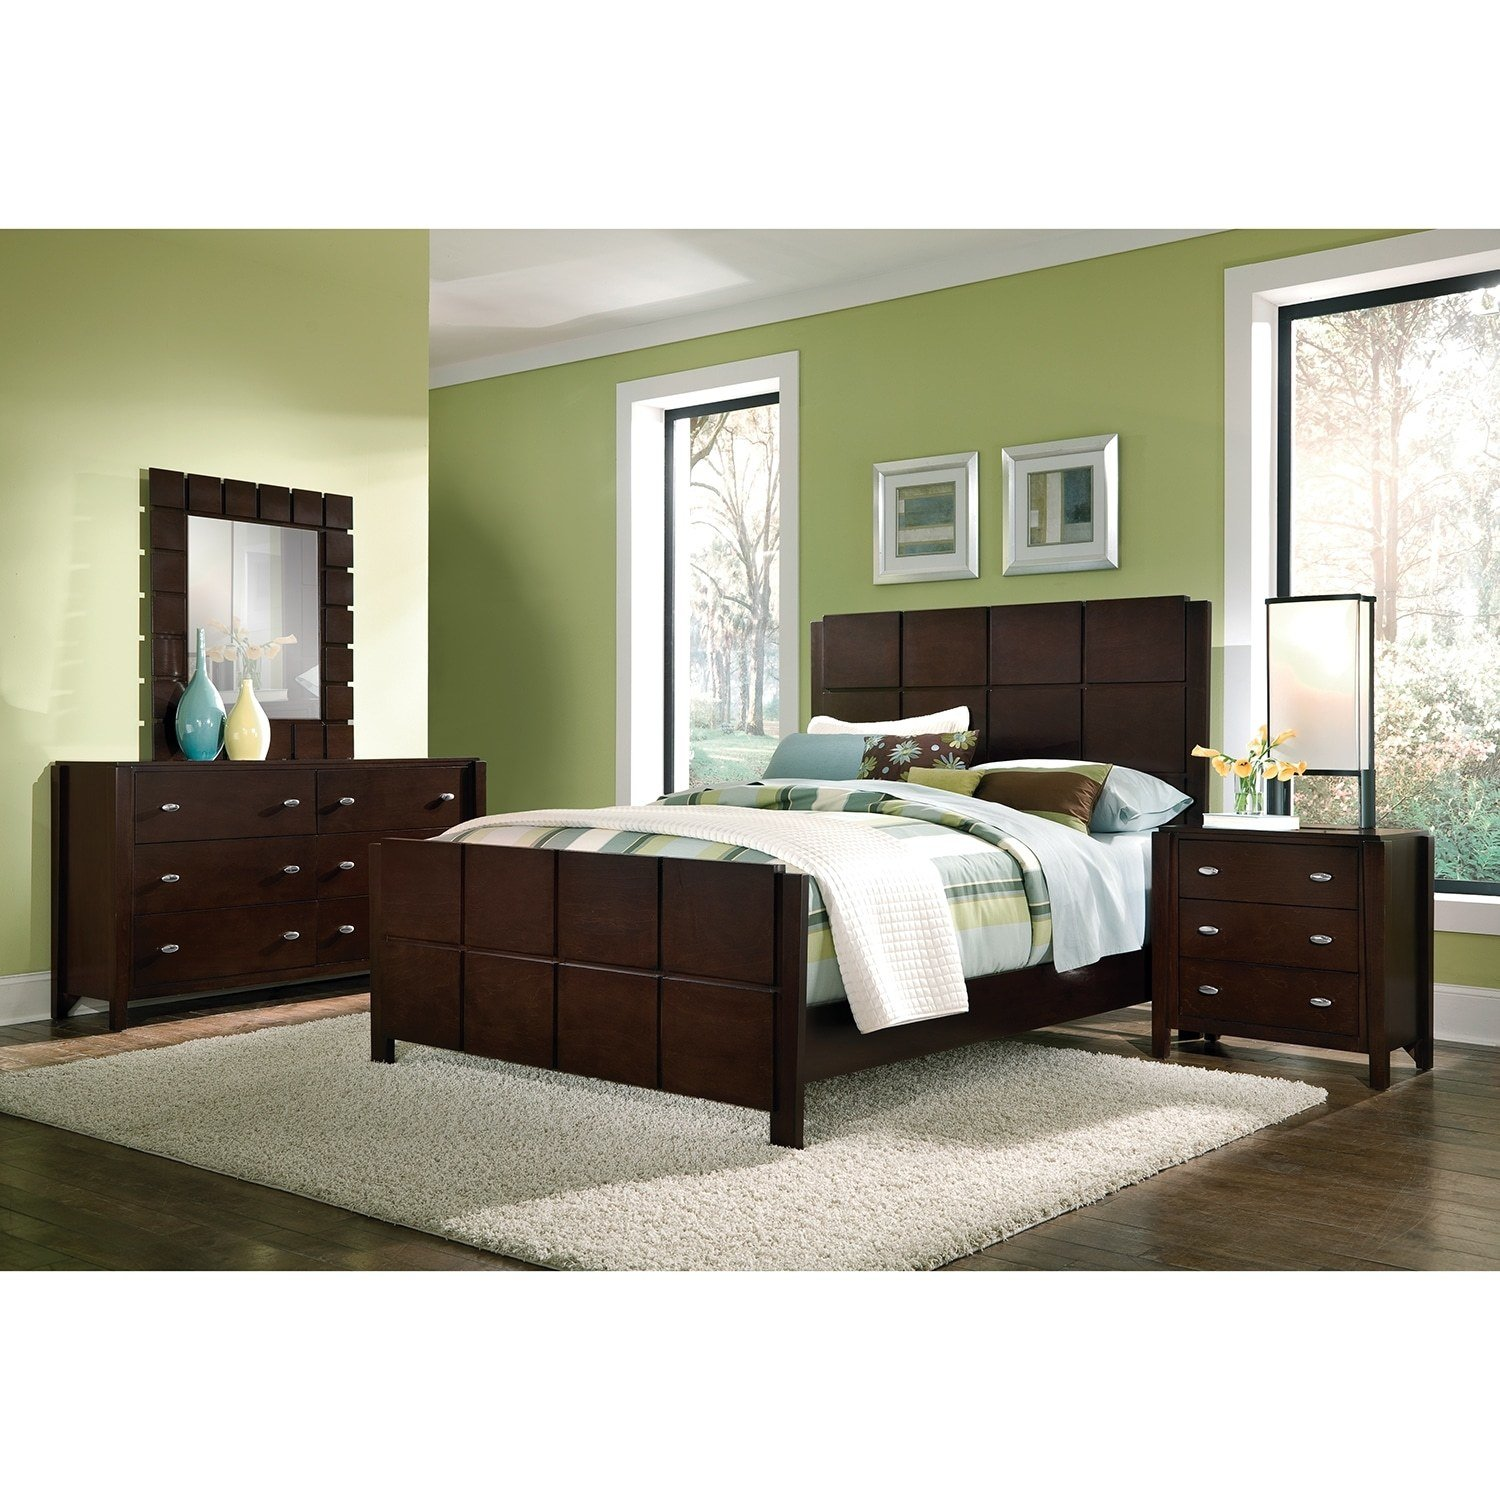 Best Mosaic 6 Piece King Bedroom Set Dark Brown Value City With Pictures